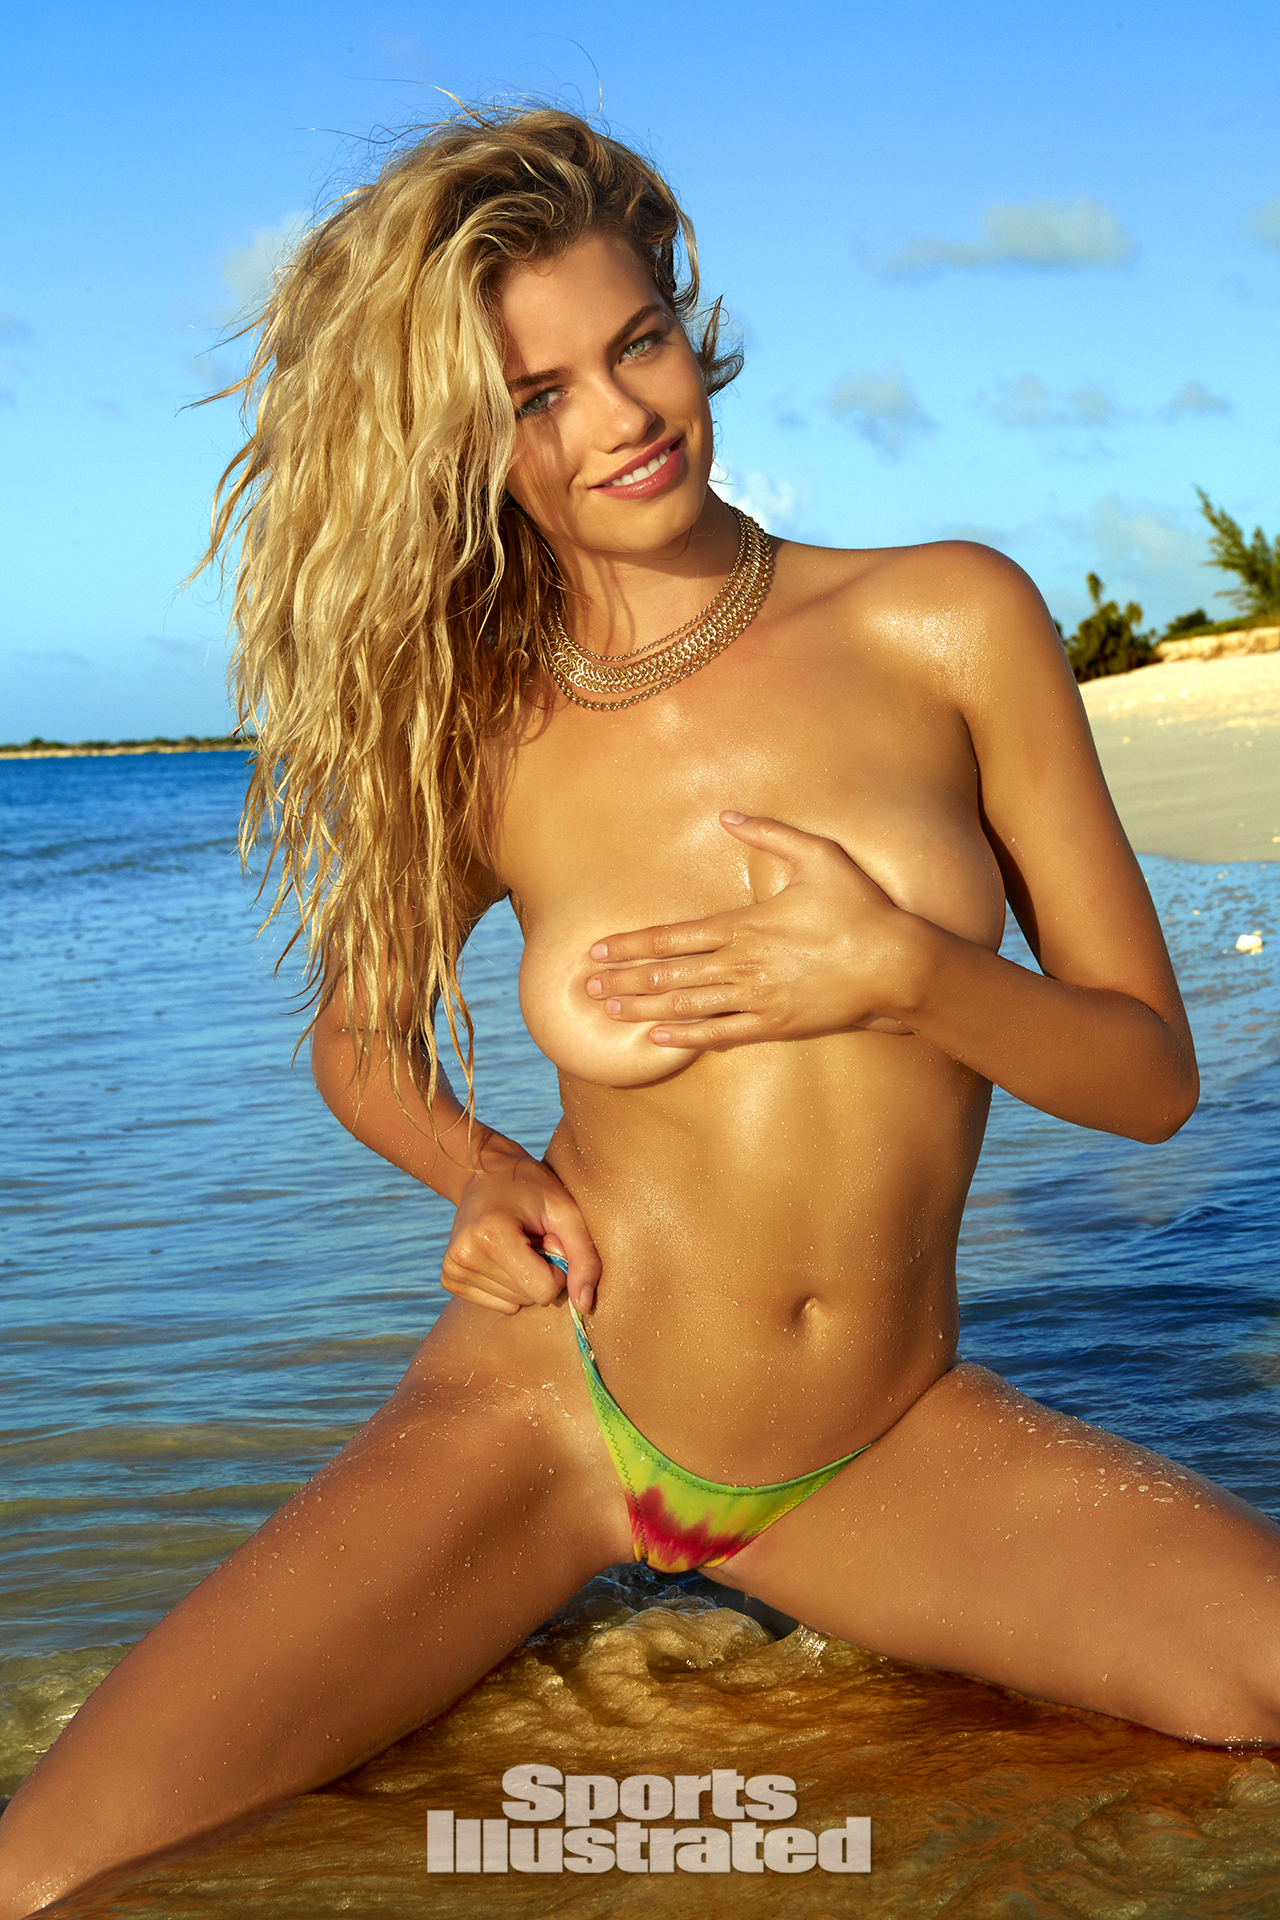 Hailey Clauson was photographed by James Macari in Turks & Caicos. Swimsuit by La Vida Aloha.